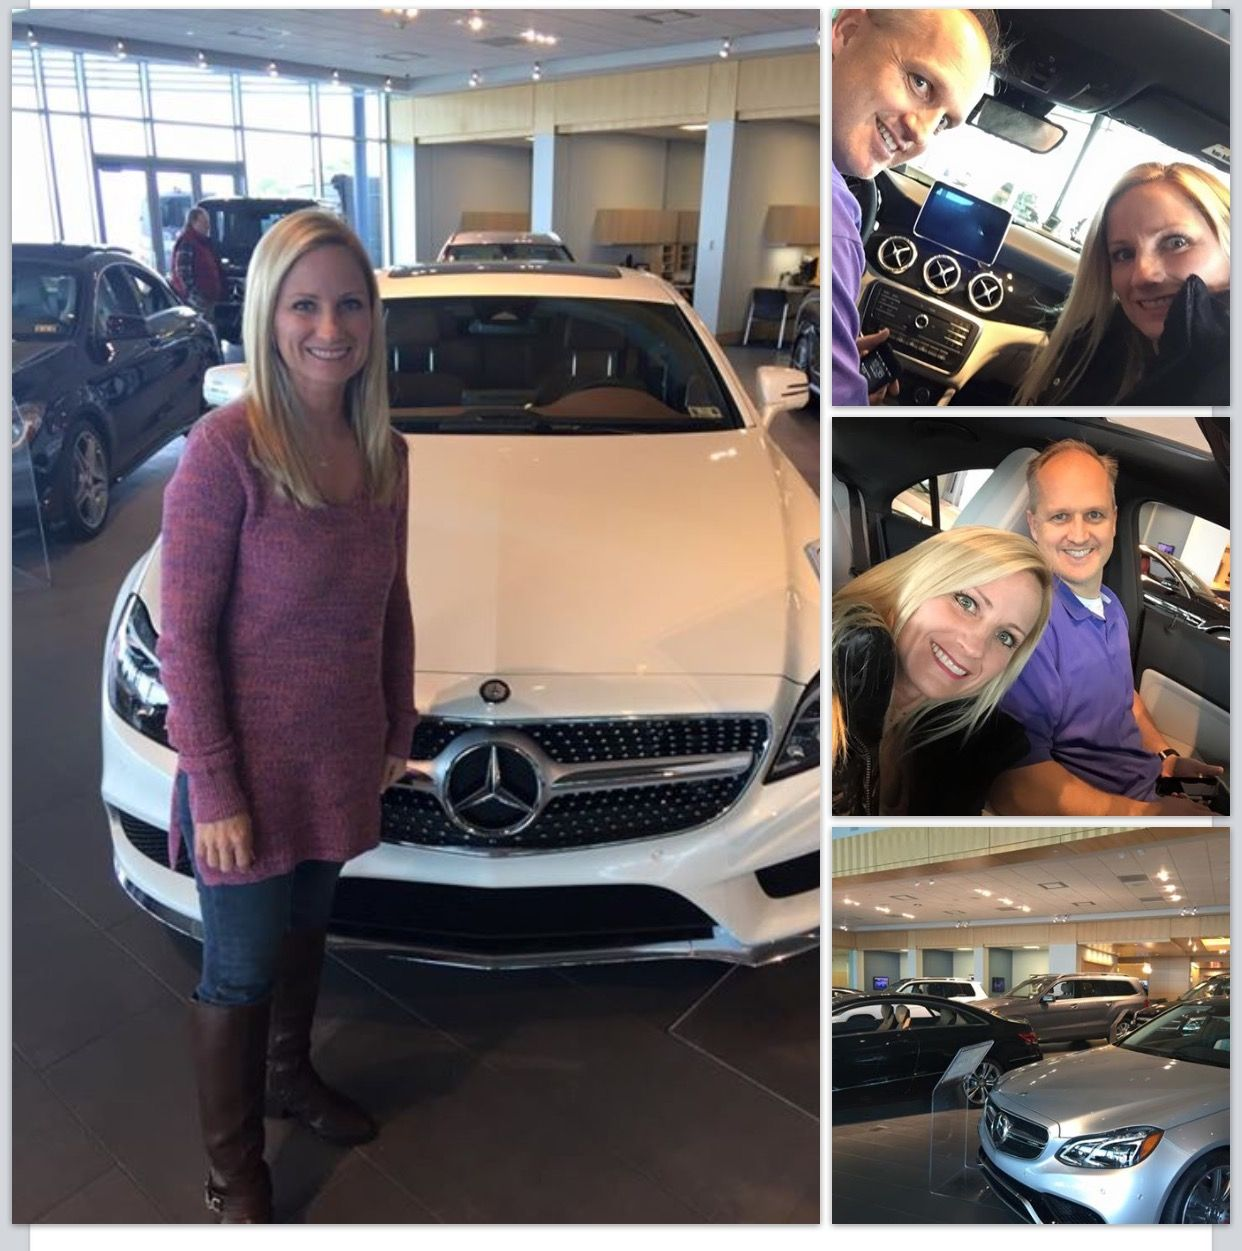 Congratulations to Jon and Tracey Westrom who bought a new Mercedes today! Our Dream Car promotions can get you one of these beautiful new cars too!